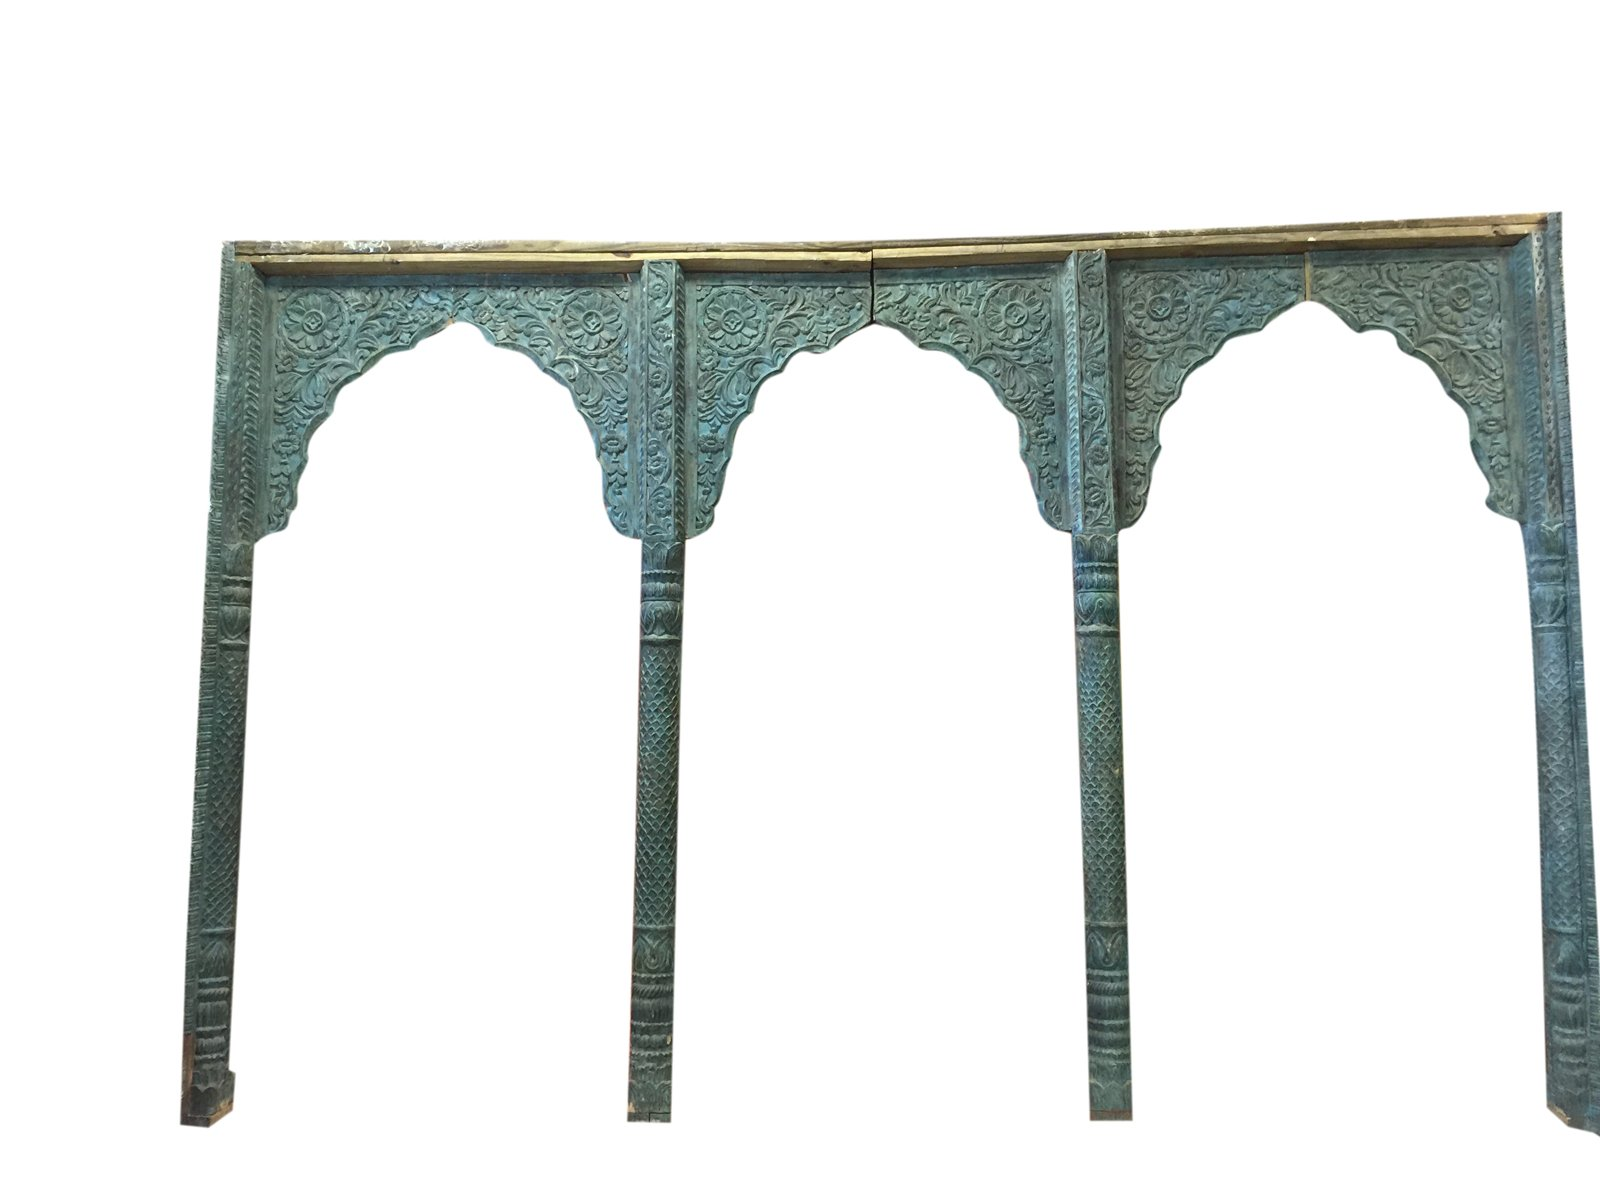 Mogul Architectural Antique India Archway Carved 3 Arch Double sided Room Divider Rare Unique 19c